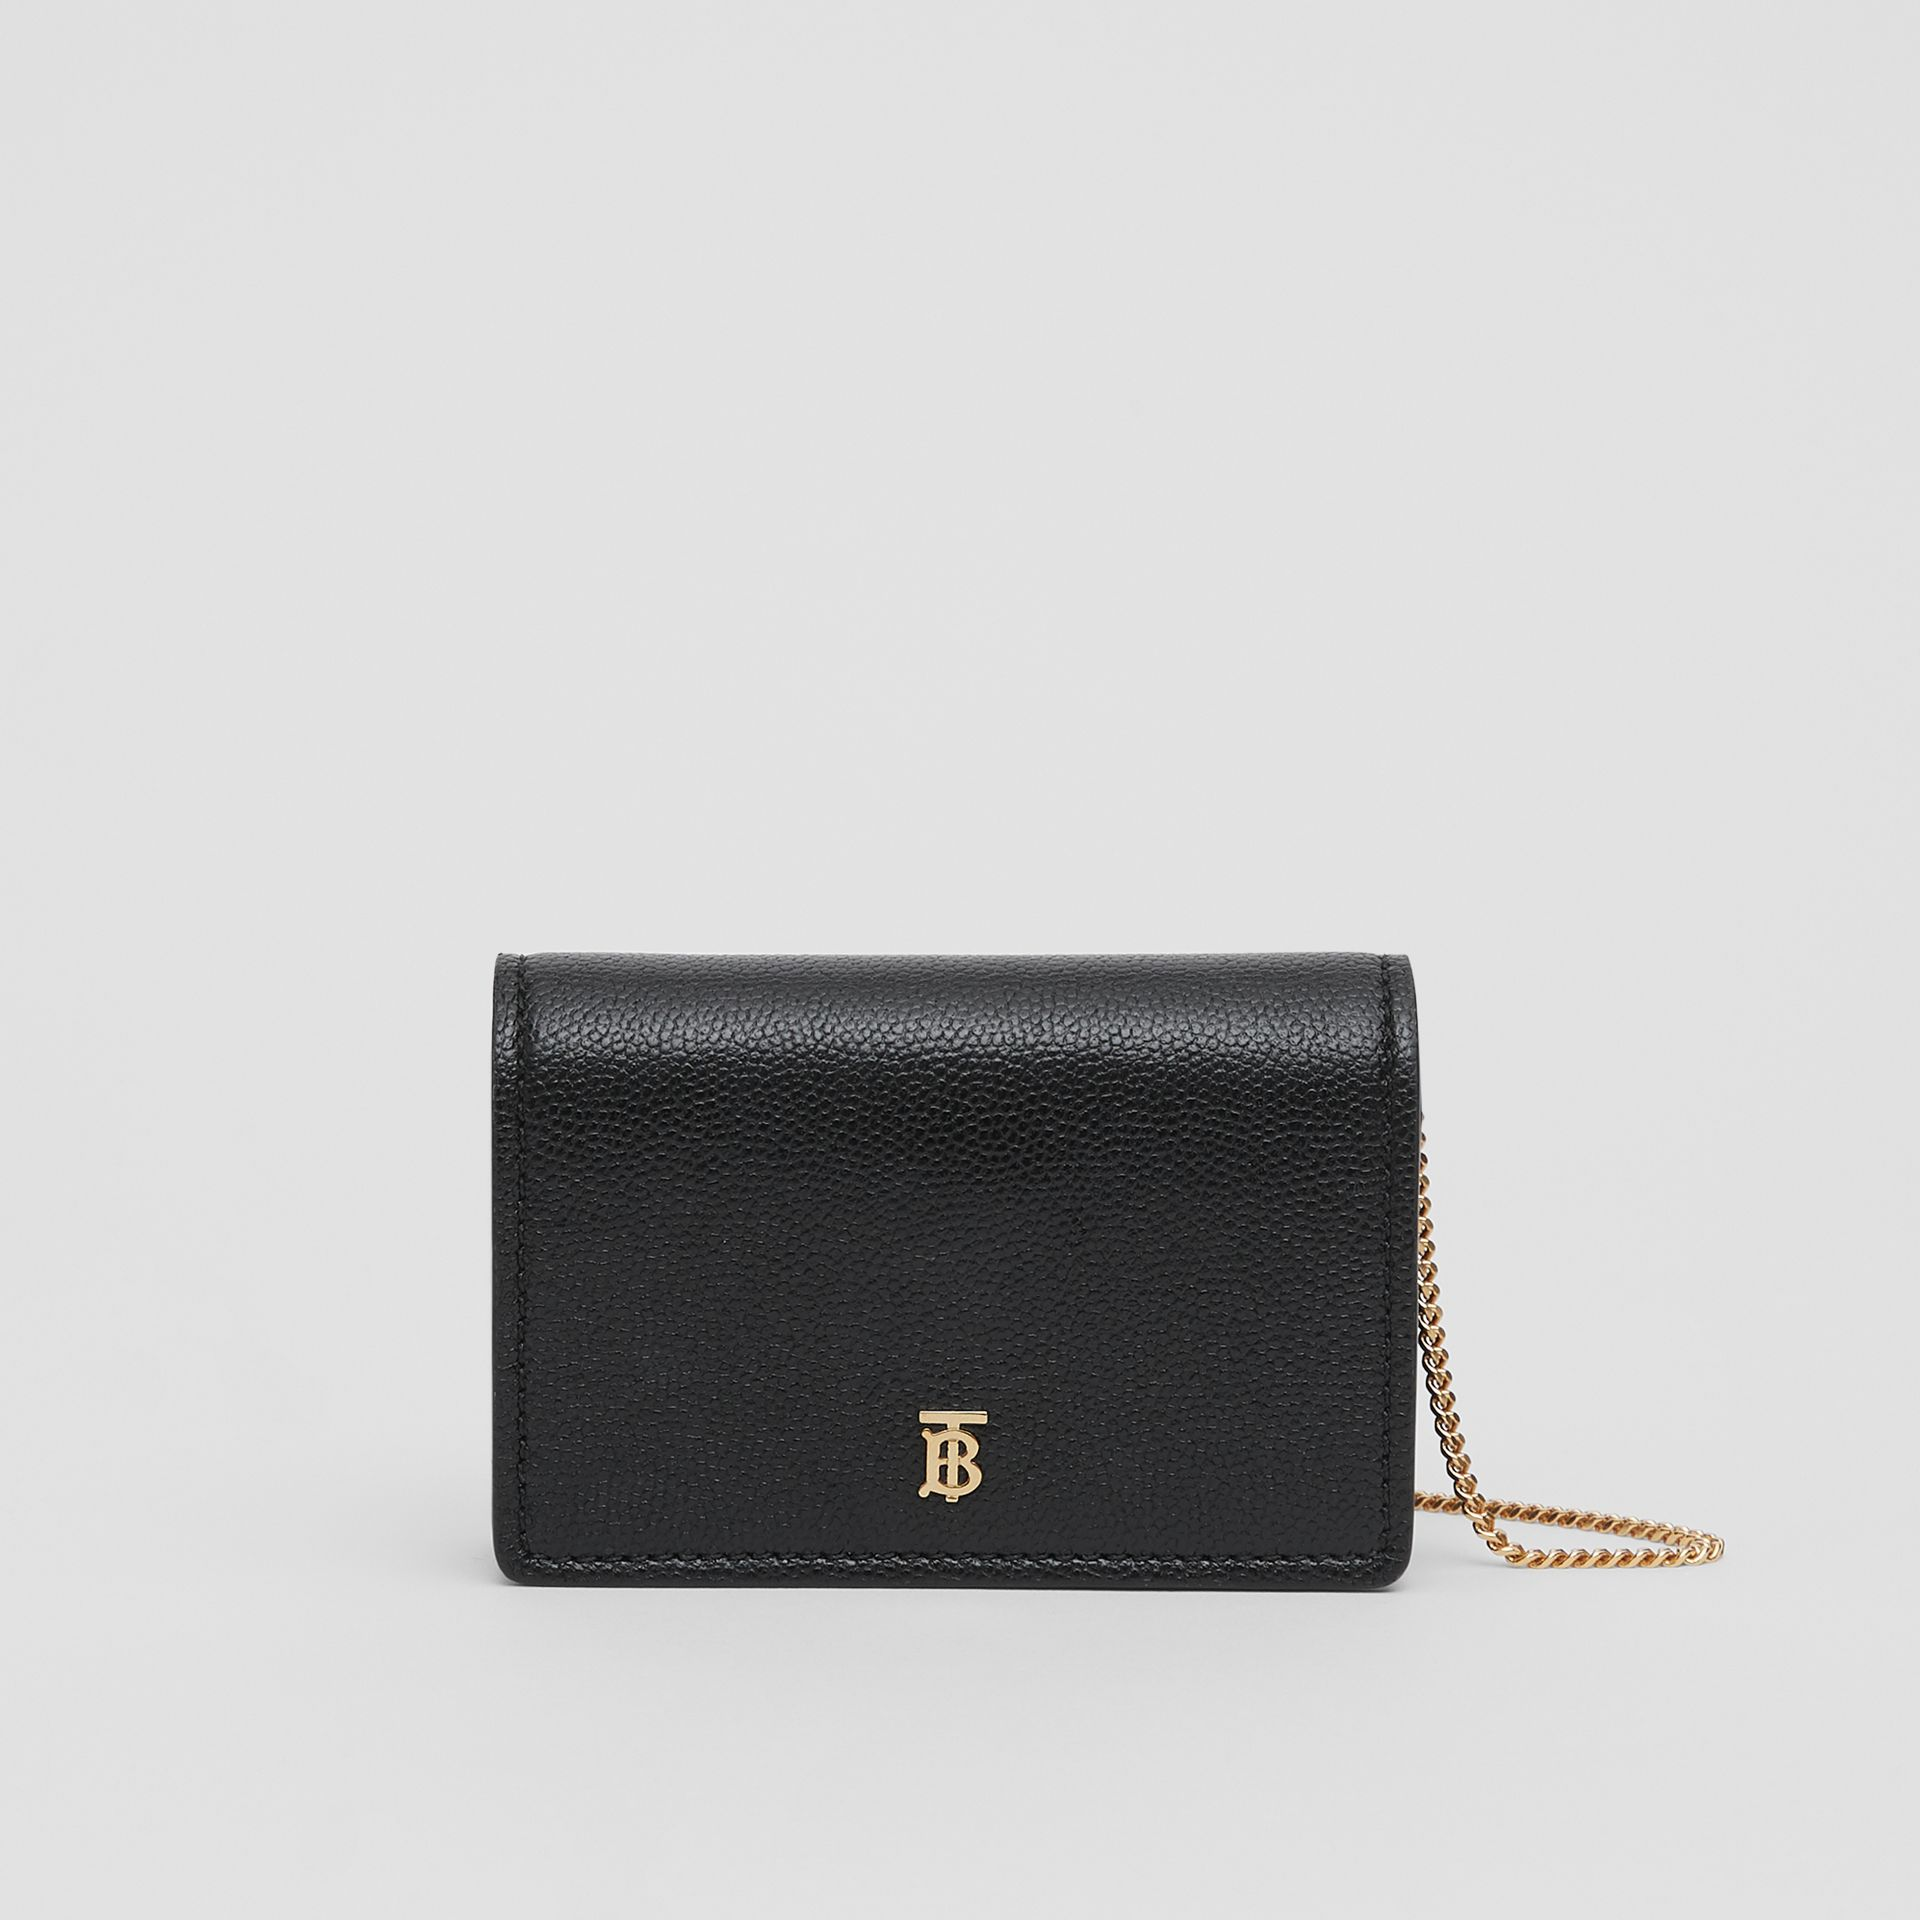 Grainy Leather Card Case with Detachable Strap in Black - Women | Burberry - gallery image 0